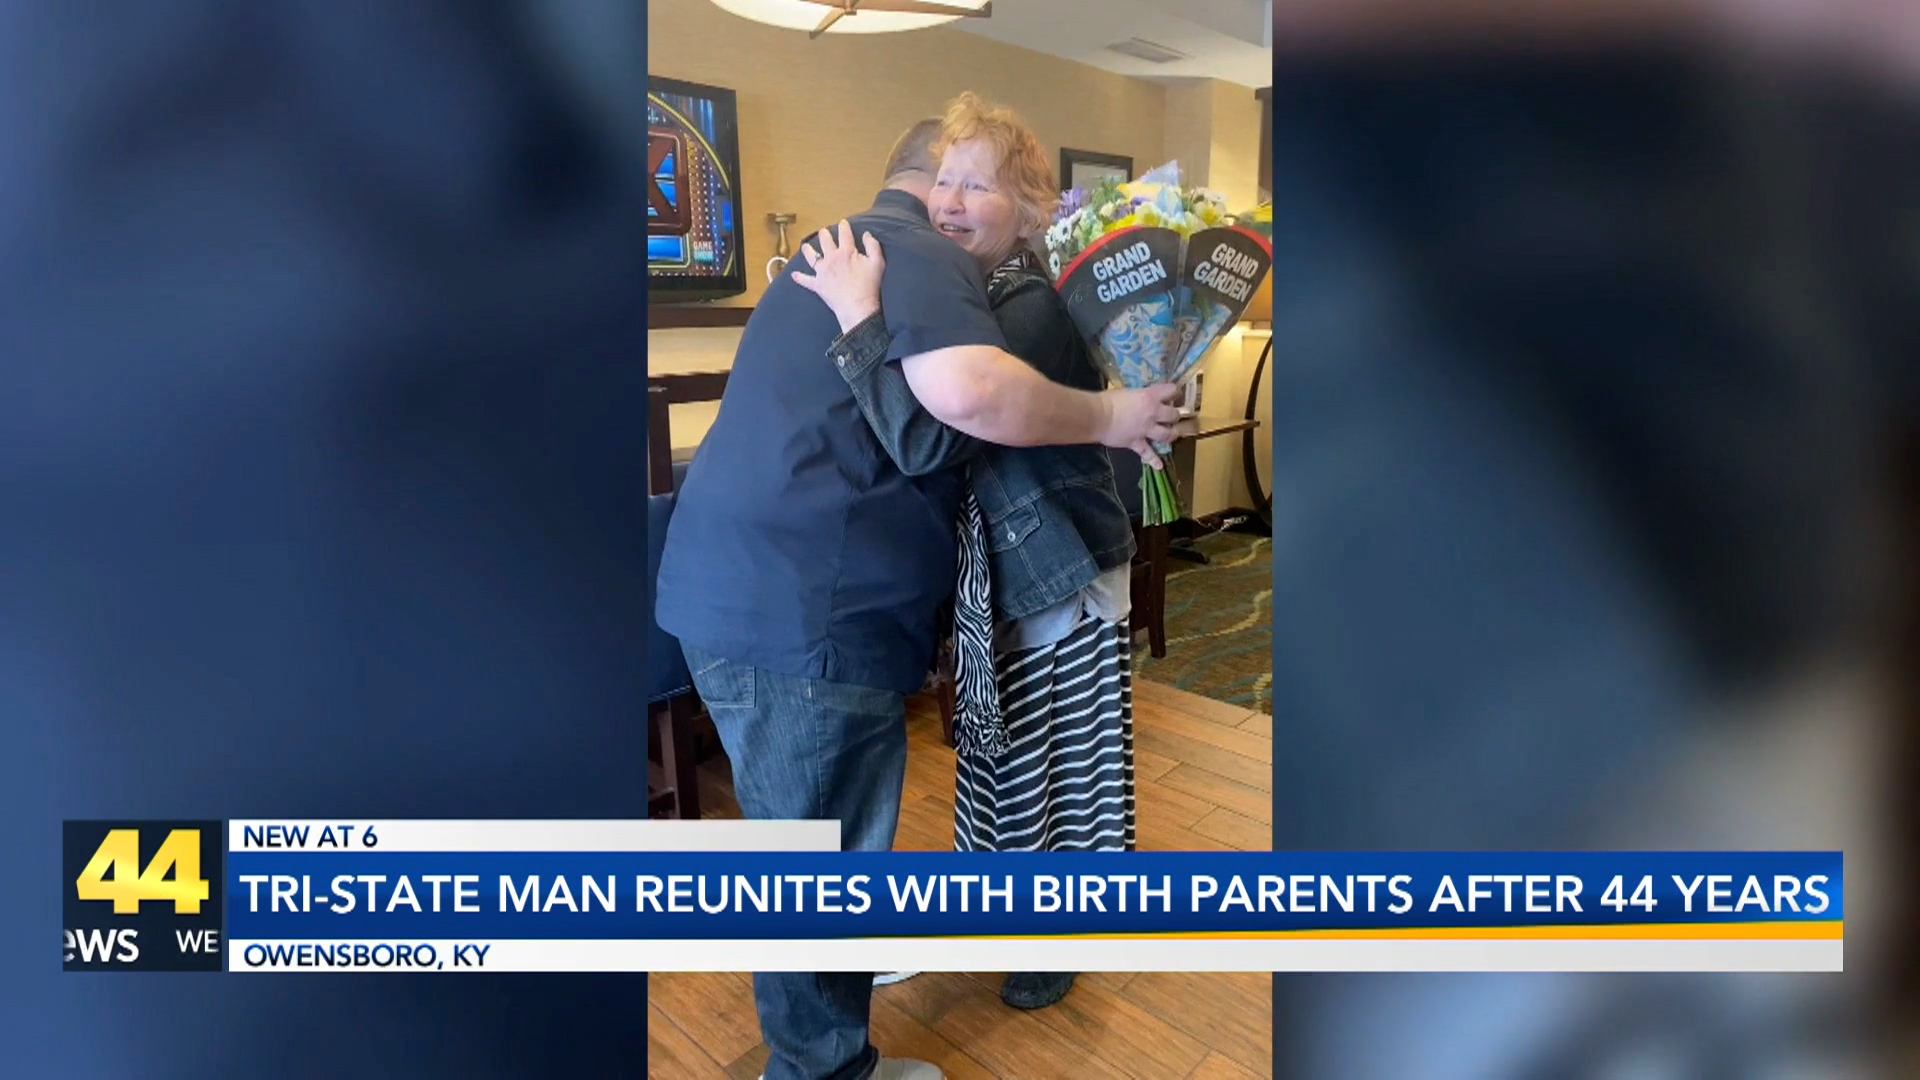 Image for Tri-State Man Reunites With Birth Parents After 44 Years